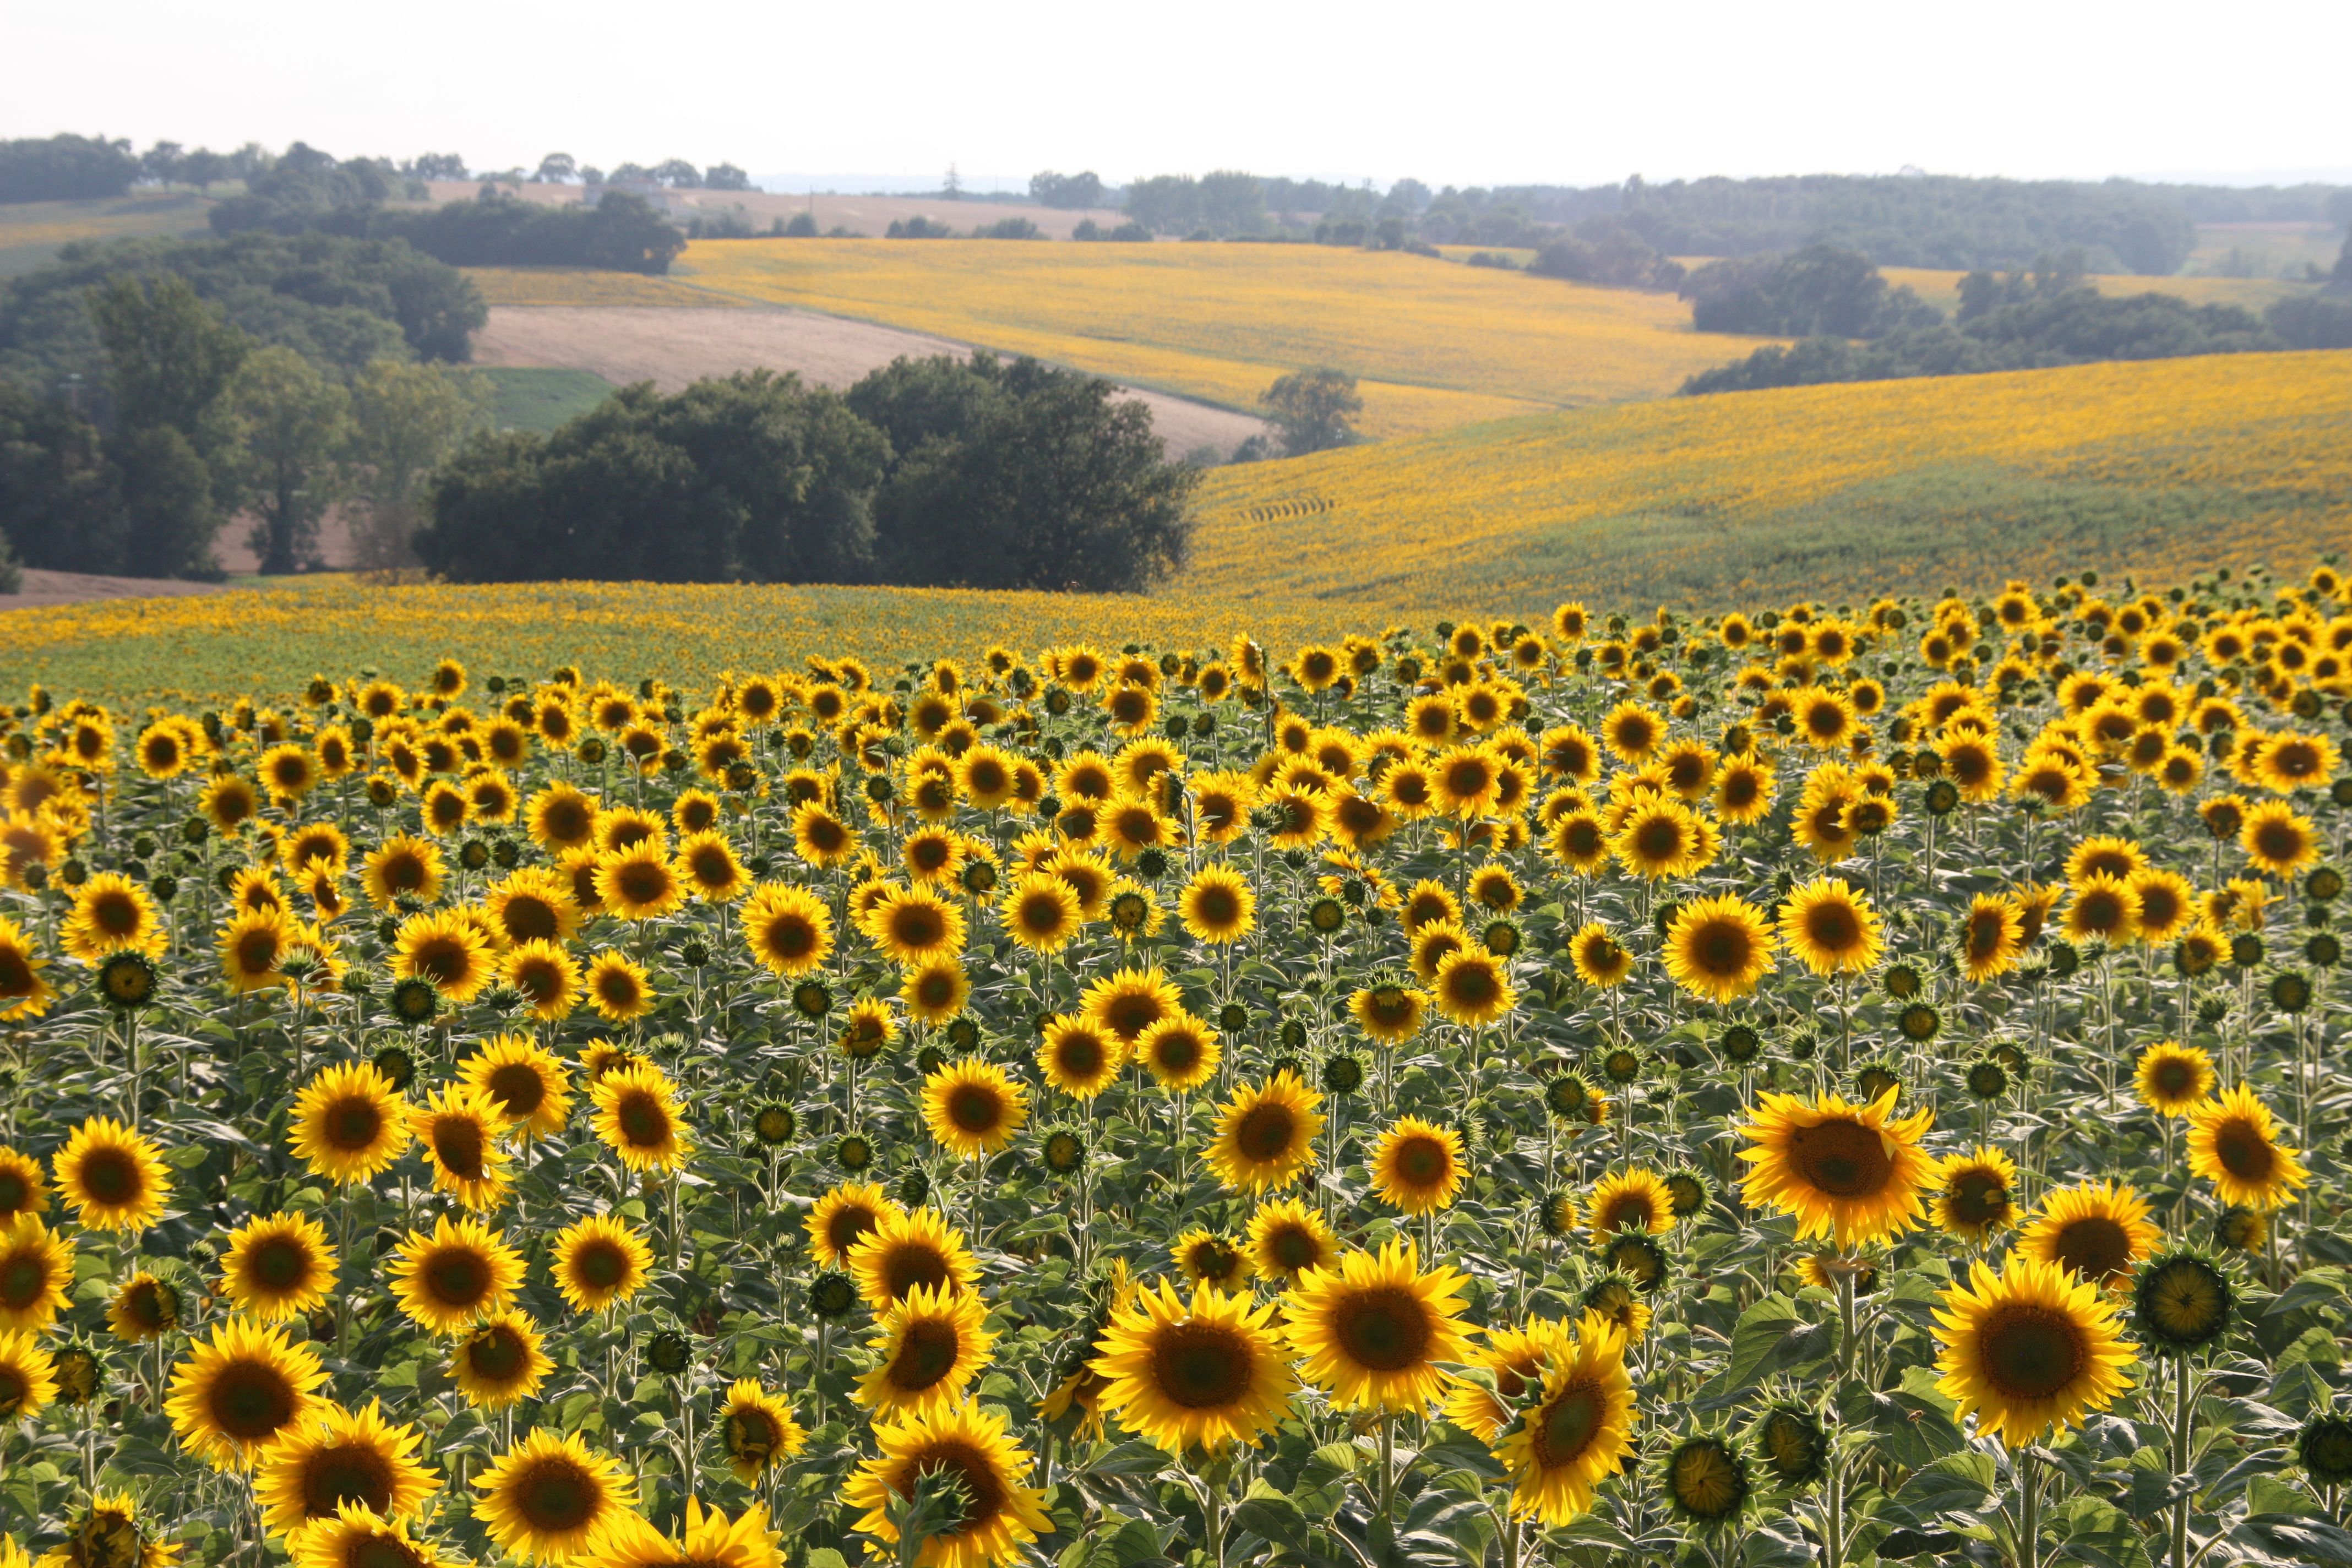 You know you are in the Gers when all you can see around you are sunflowers.